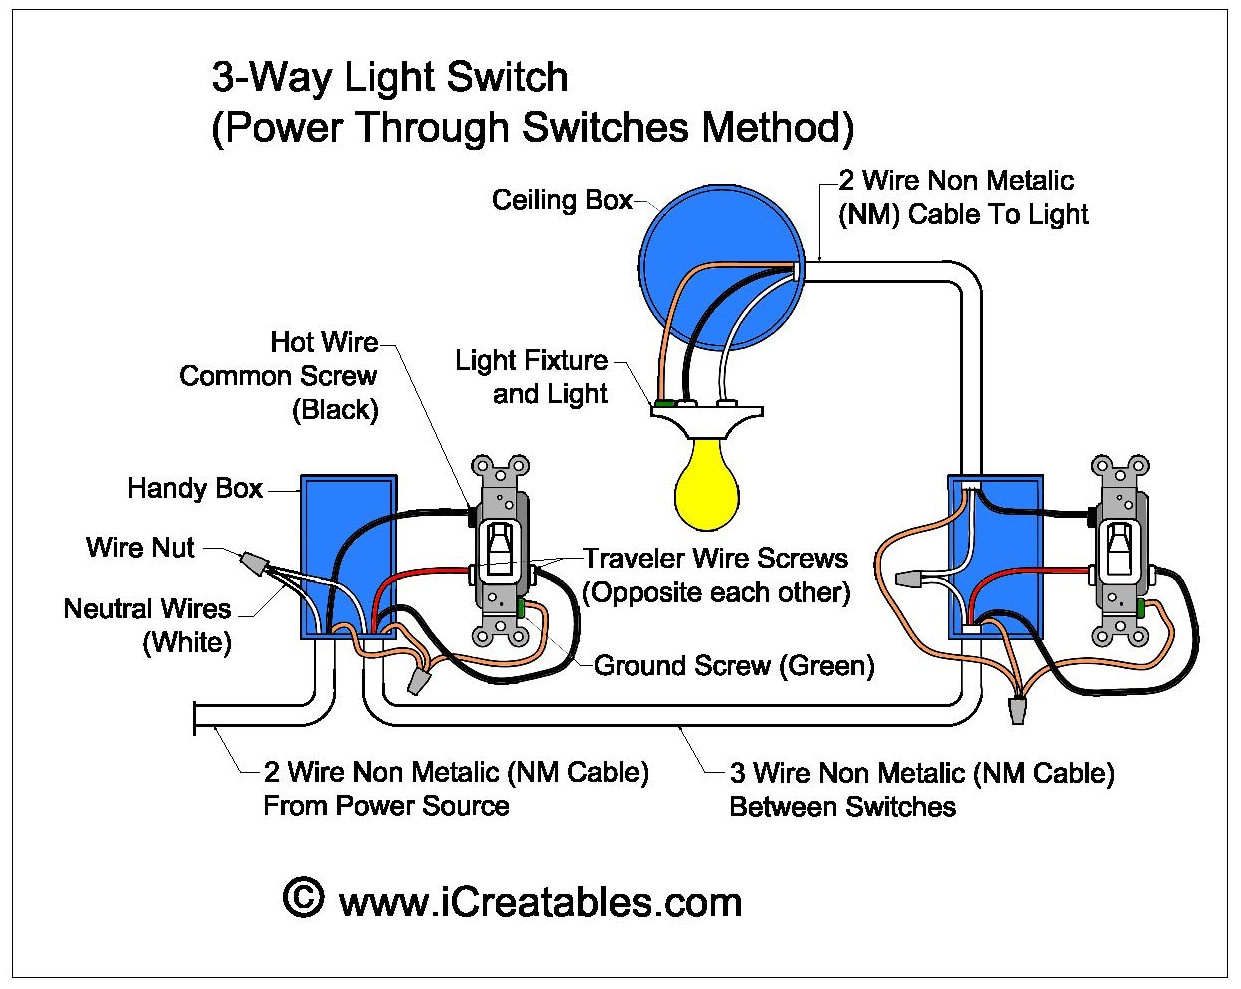 wiring a 3 way light switch diagram wire a three way switch | icreatables.com how to wire a 3 way light switch diagram #7